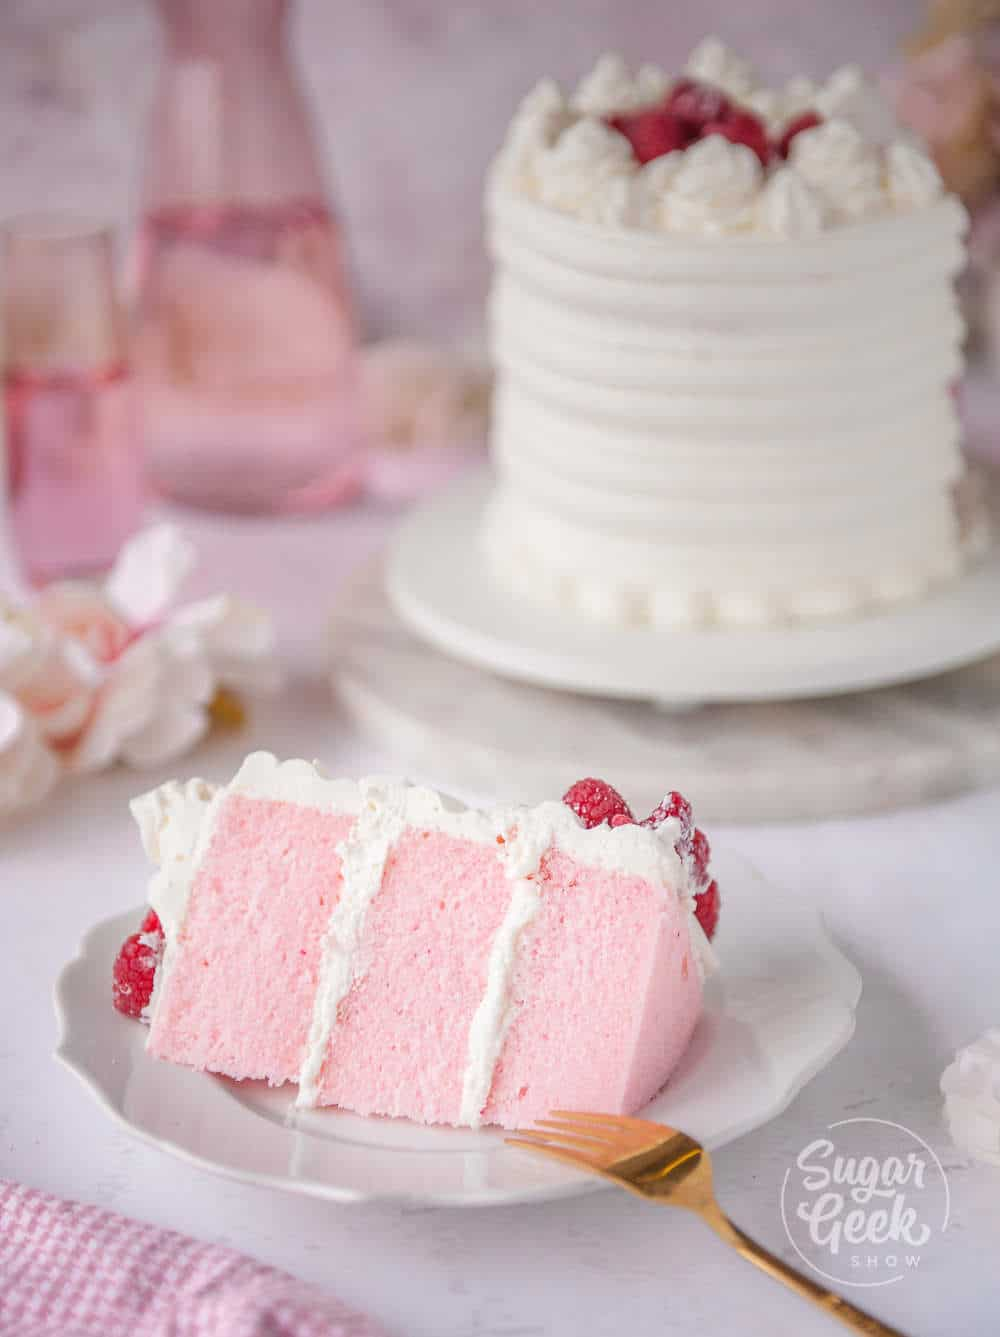 slice of pink velvet cake on a white plate in front of pink velvet layer cake in the background